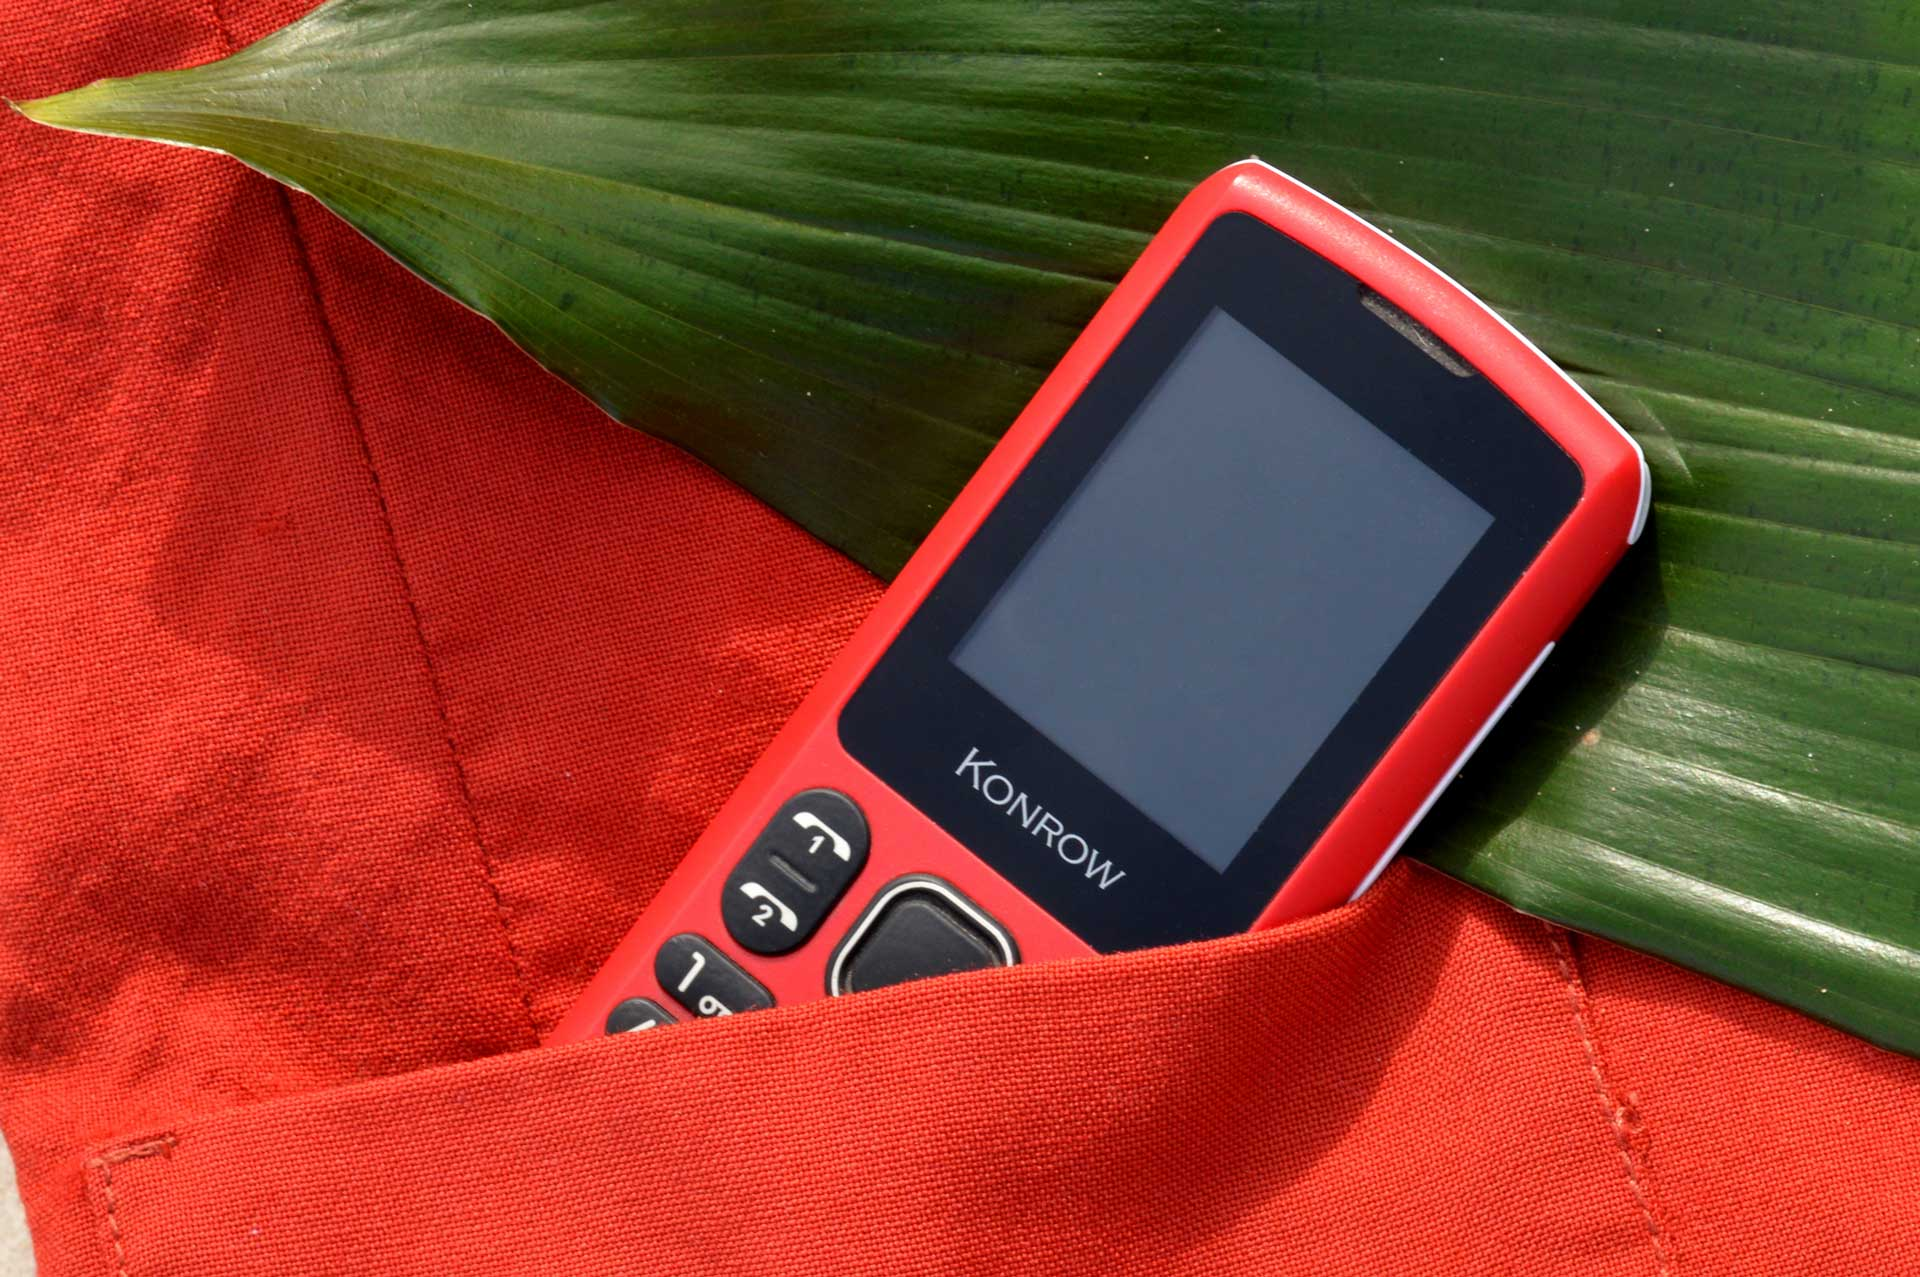 Have a look at Konrow's mobile phones range